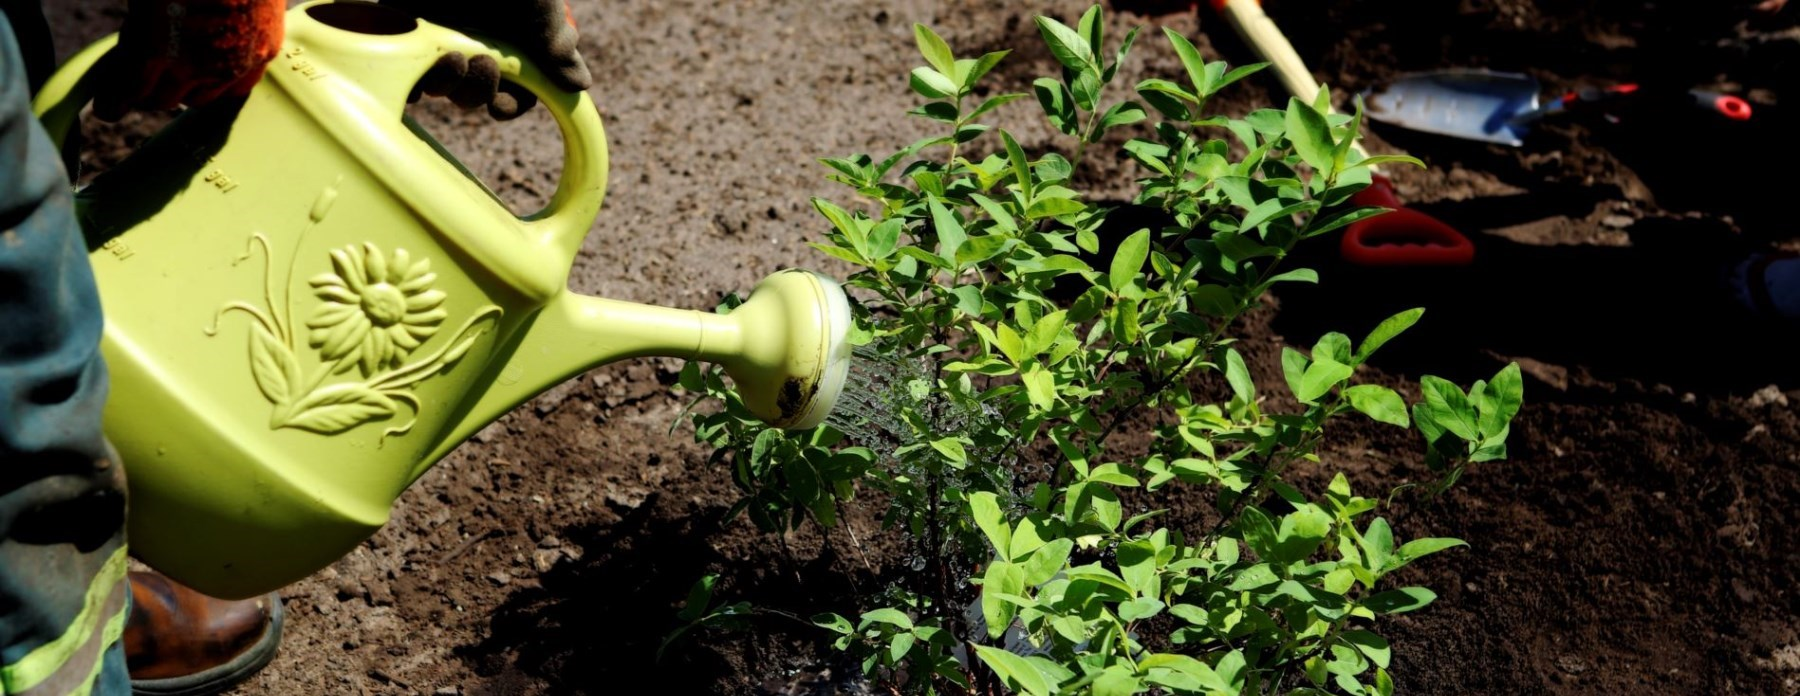 watering can and plant in the dirt